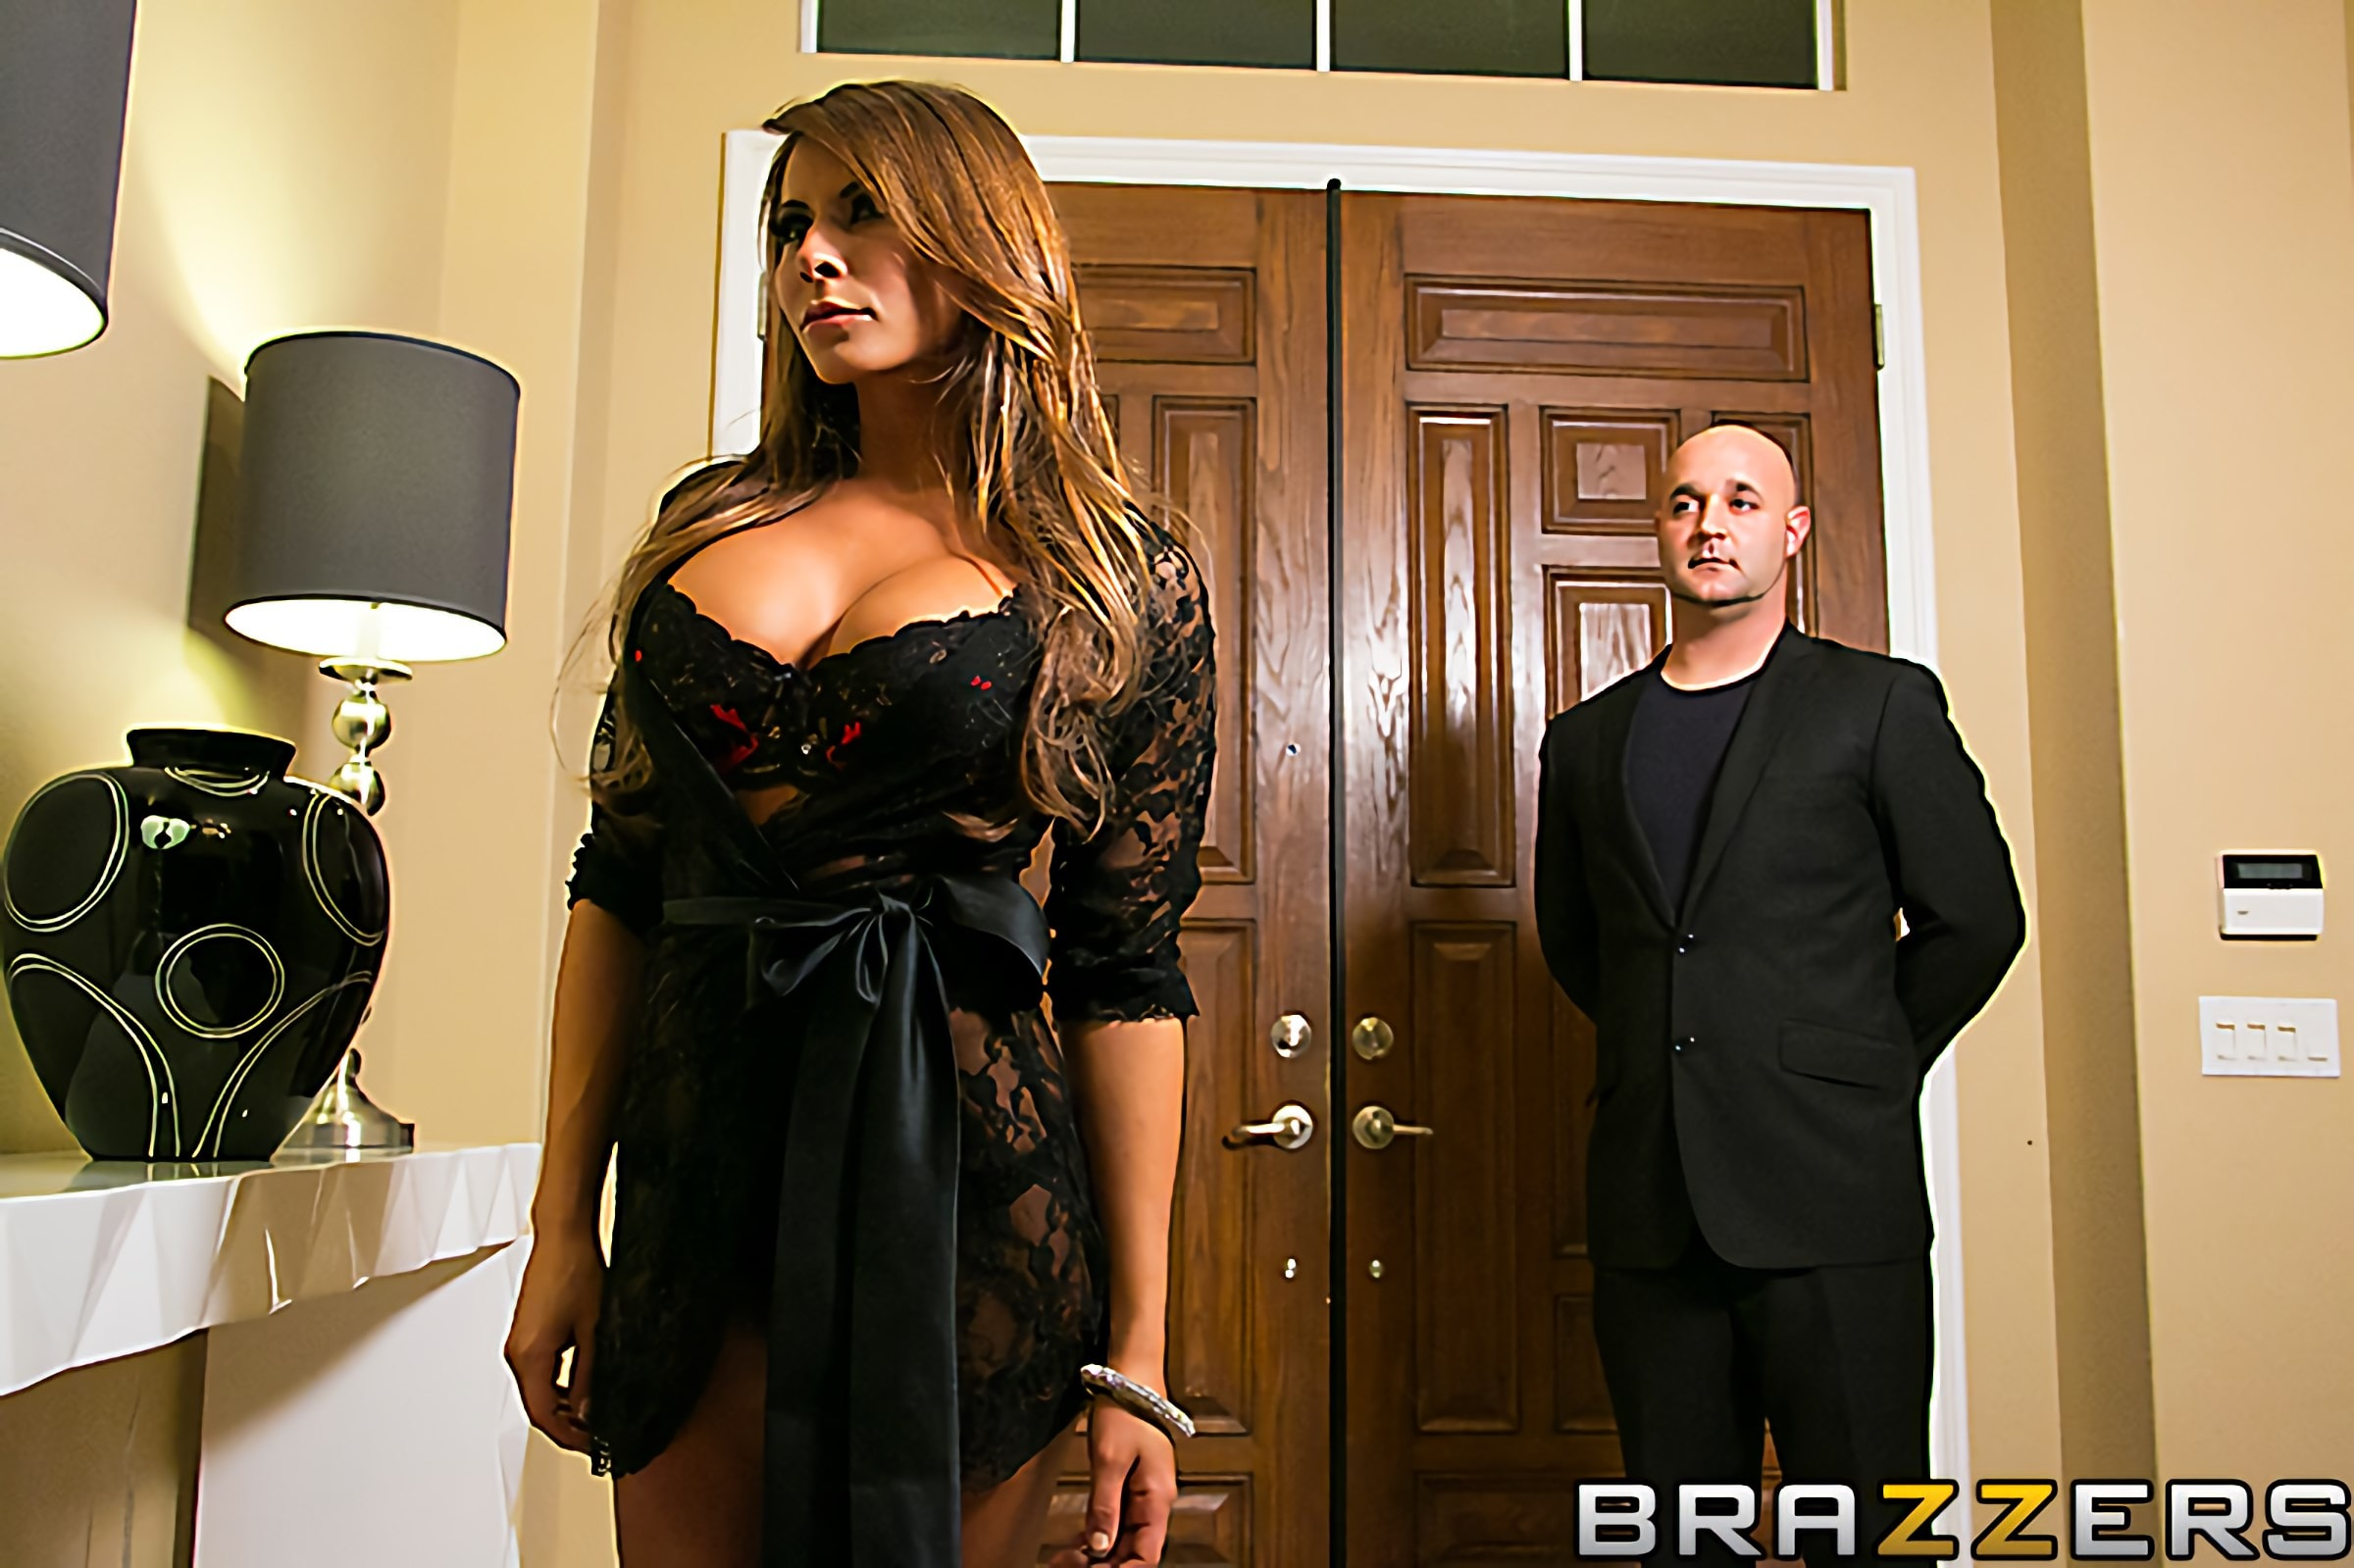 Brazzers 'Finding the Perfect Fuck' starring Madison Ivy (Photo 2)